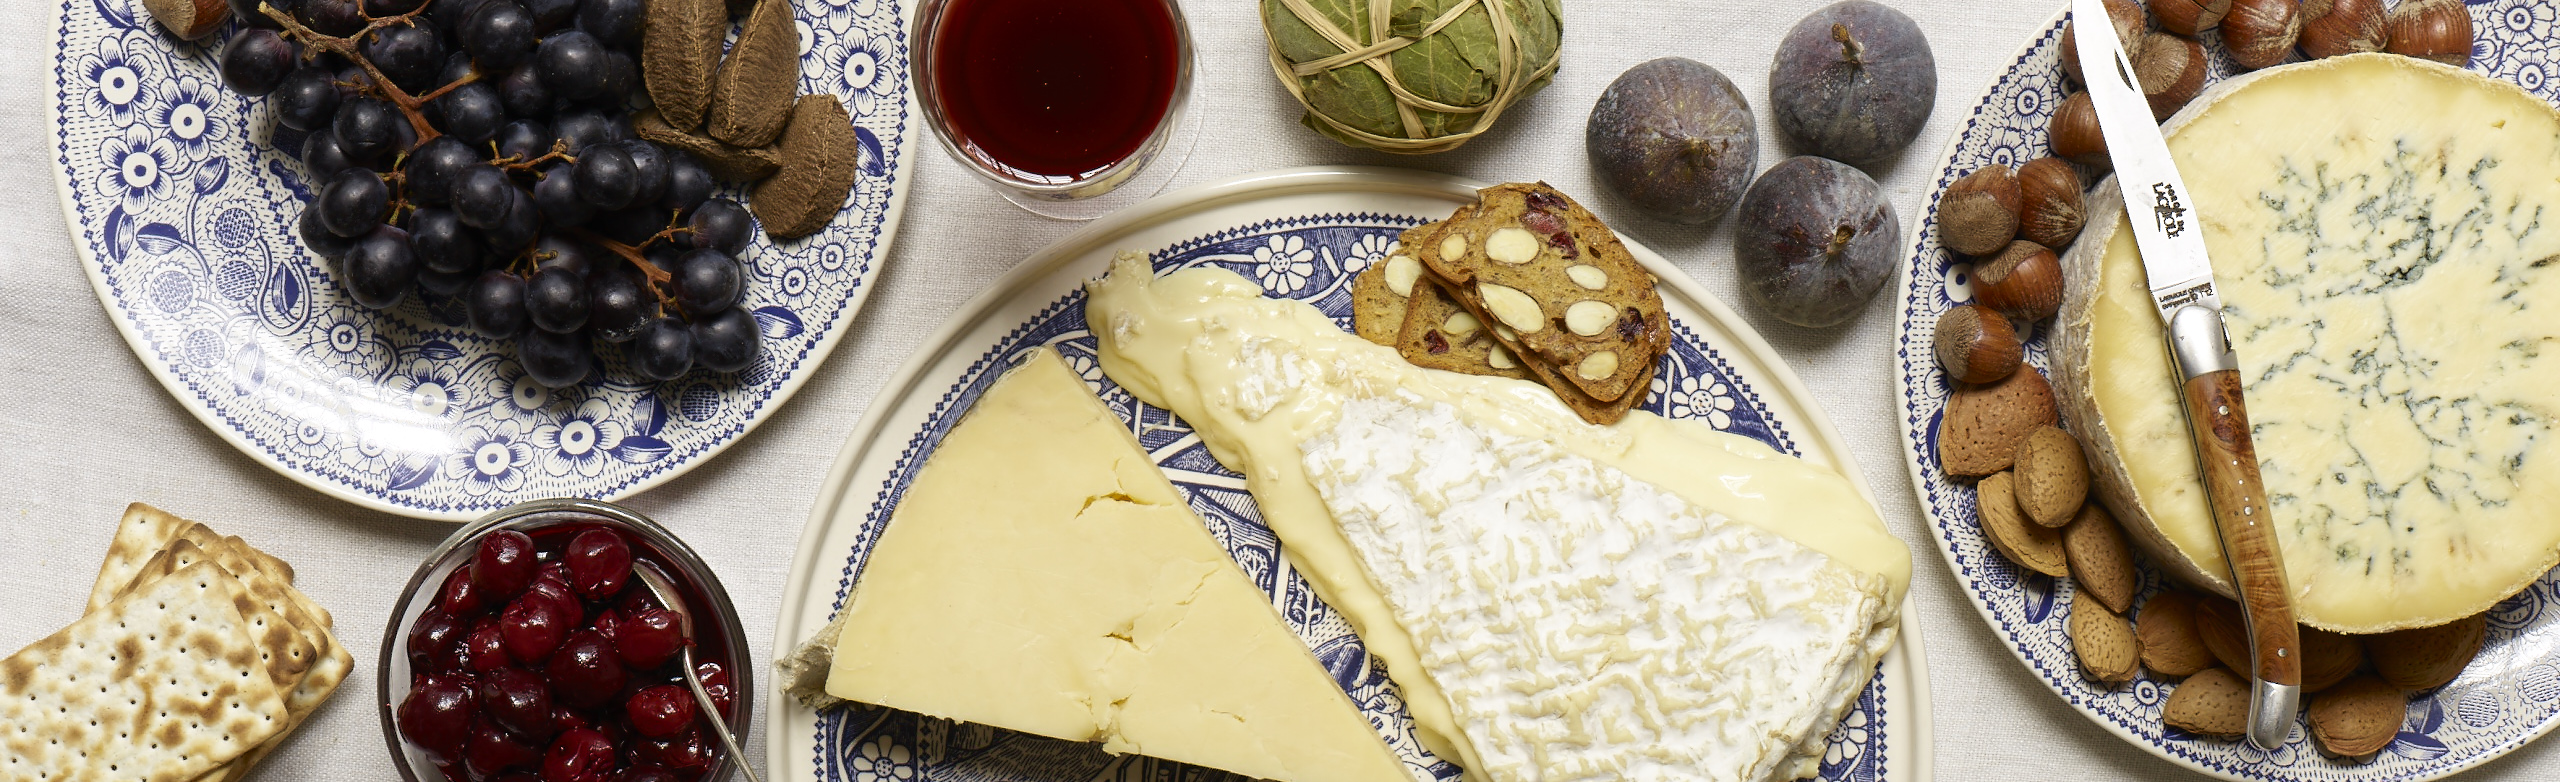 Serving and Cutting Your Christmas Cheese